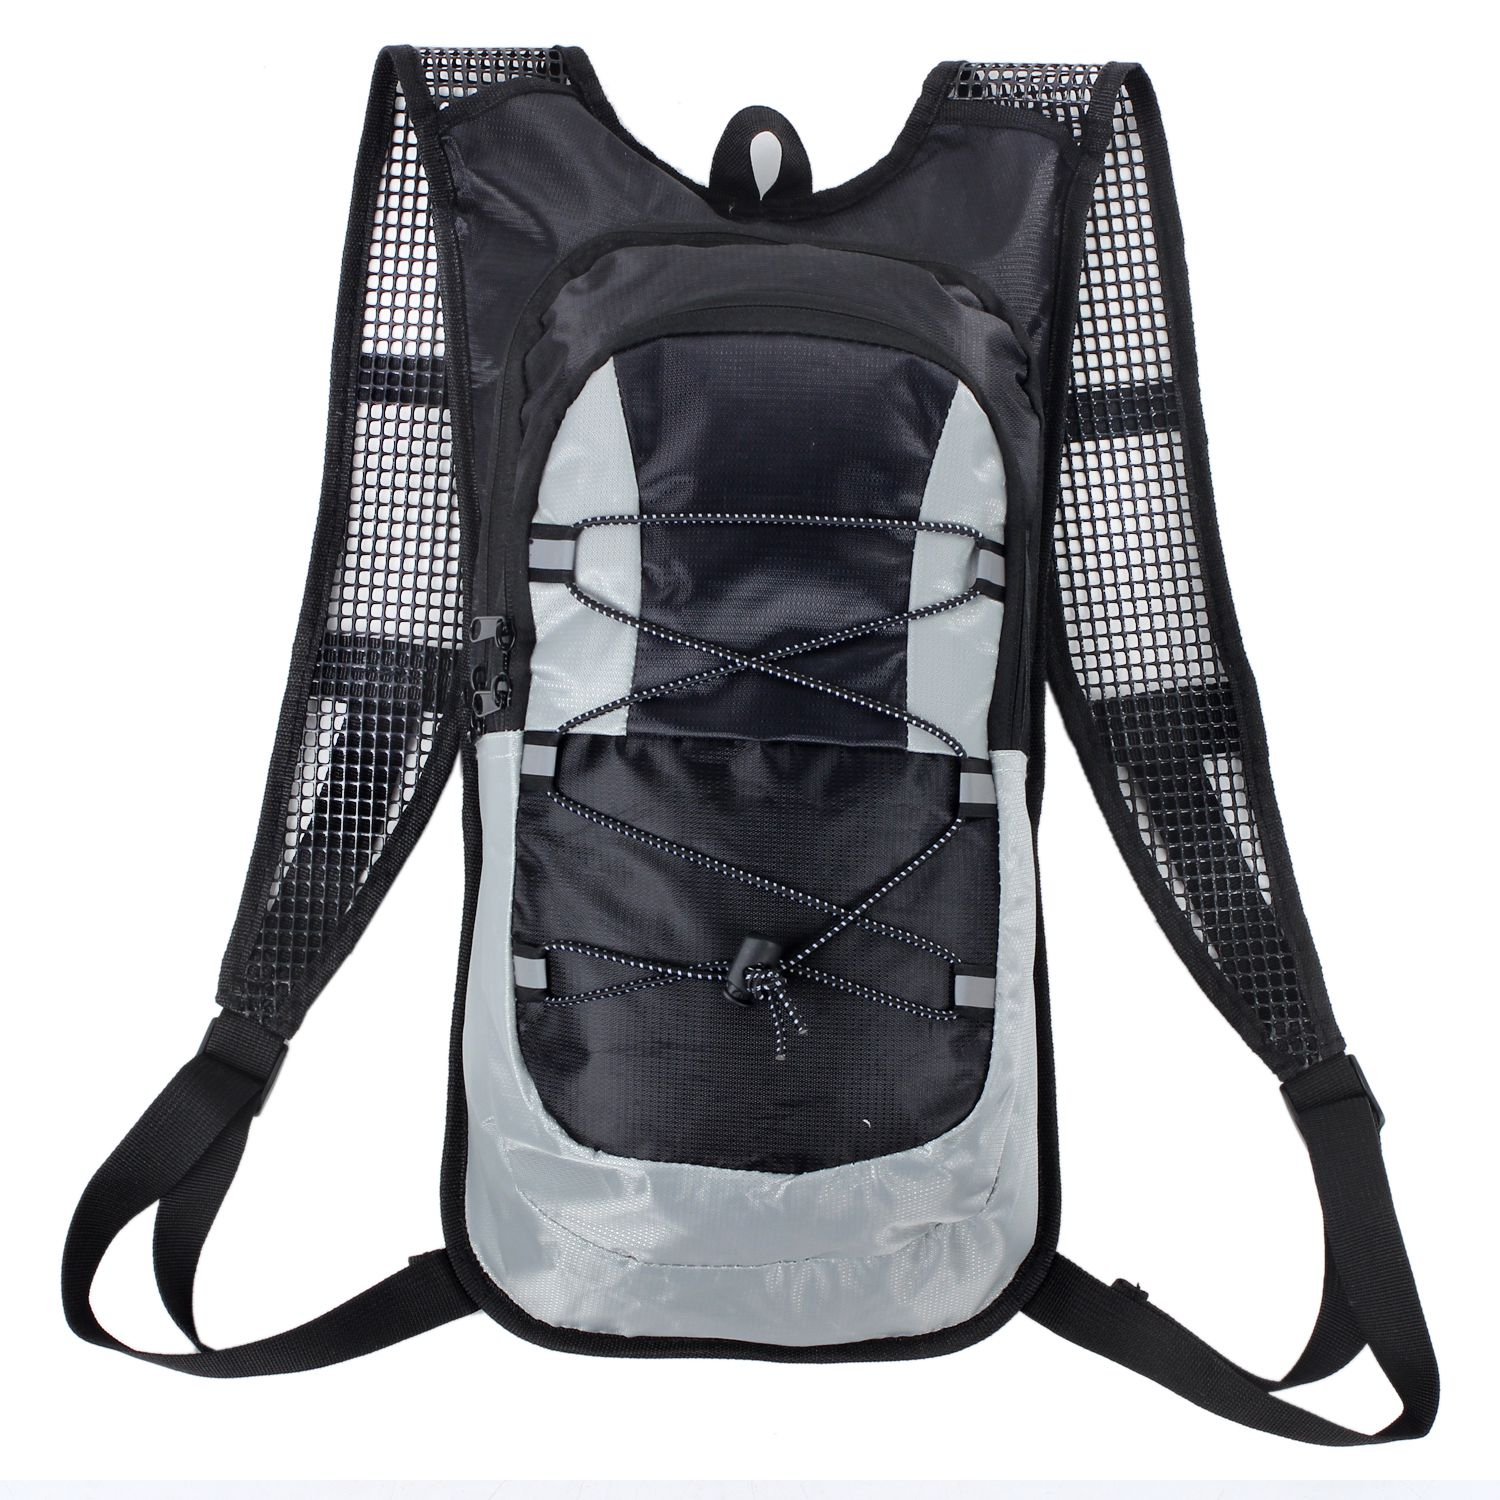 03ec7c6dce Buy daypack travel hiking mens and get free shipping on AliExpress.com